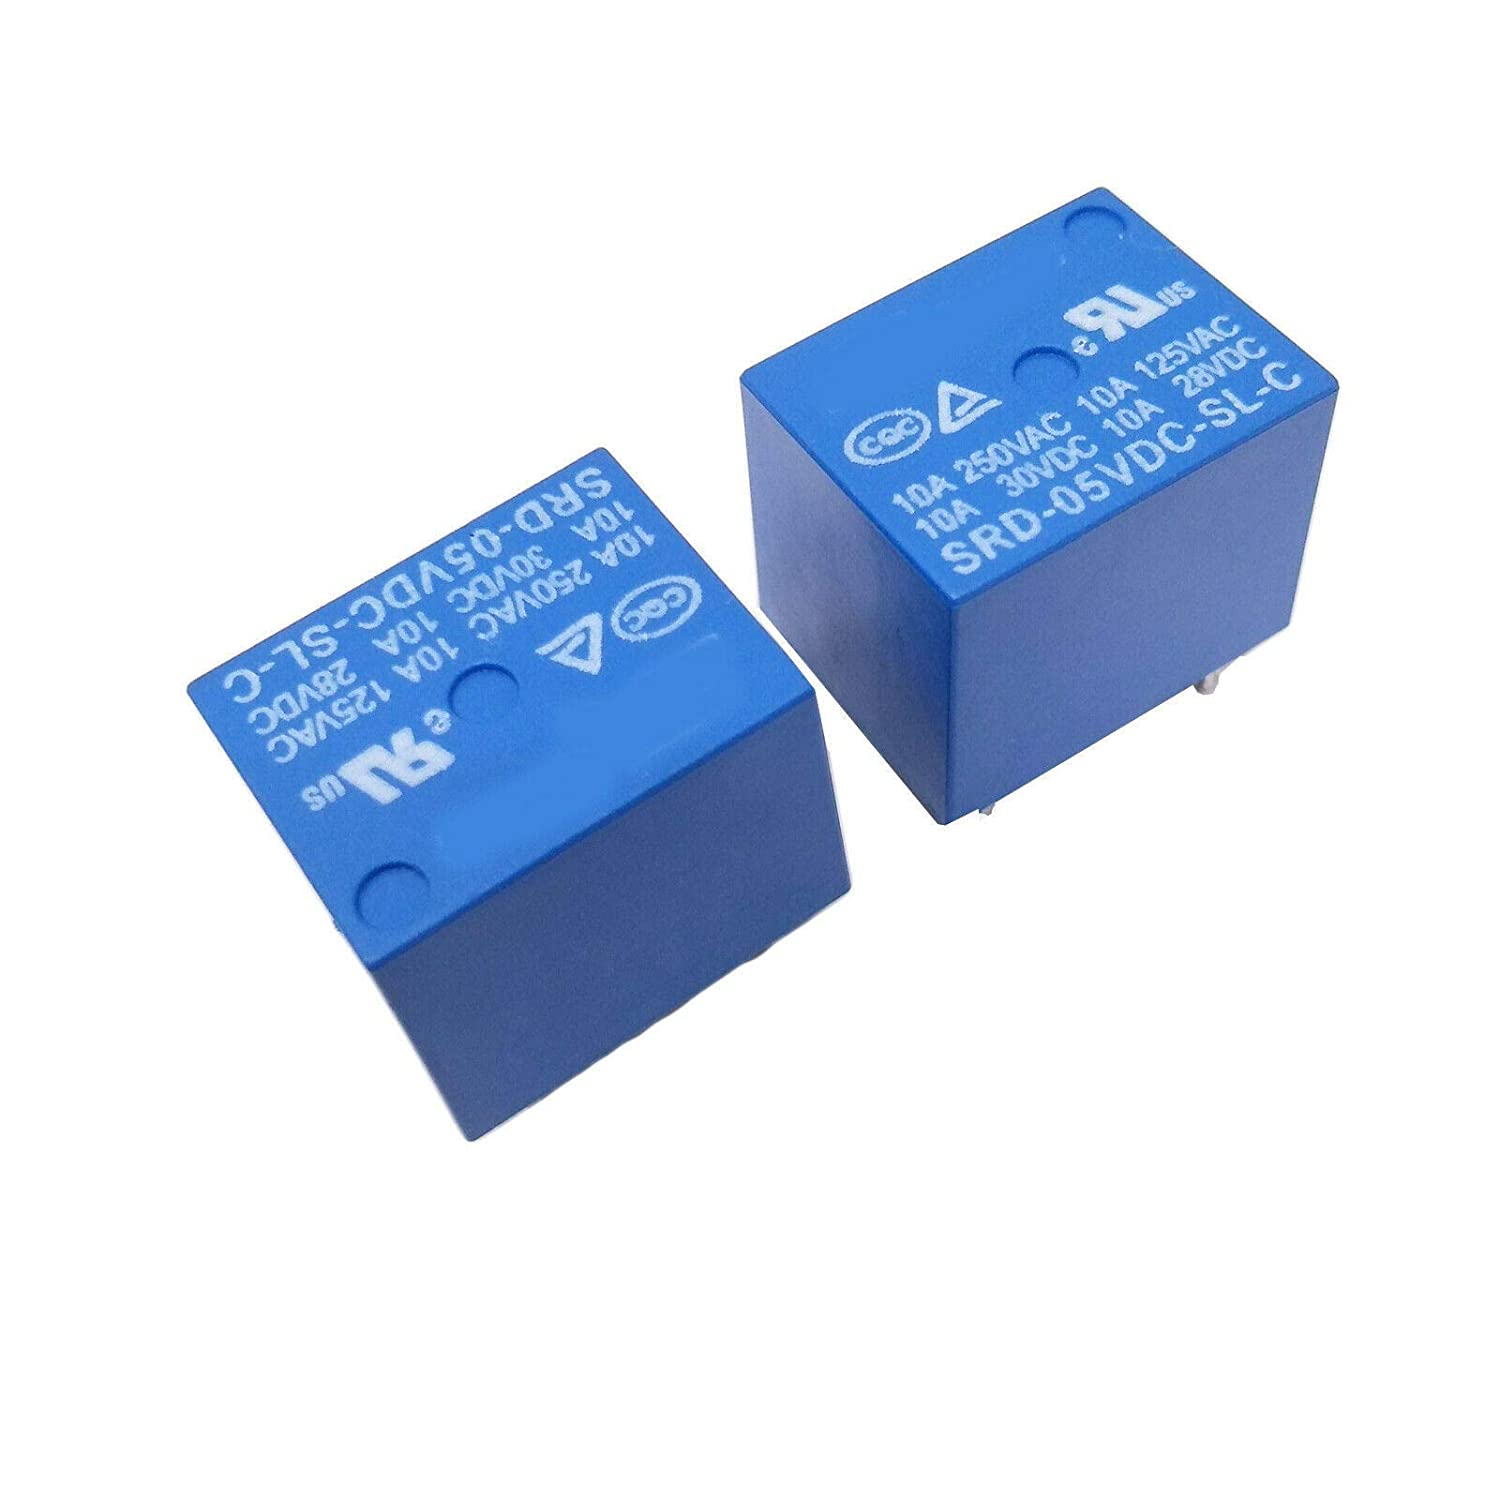 NEW 5pcs Mini Power Relay 5V DC SRD-5VDC-SL-C SRD-5VDC-SL-C PCB